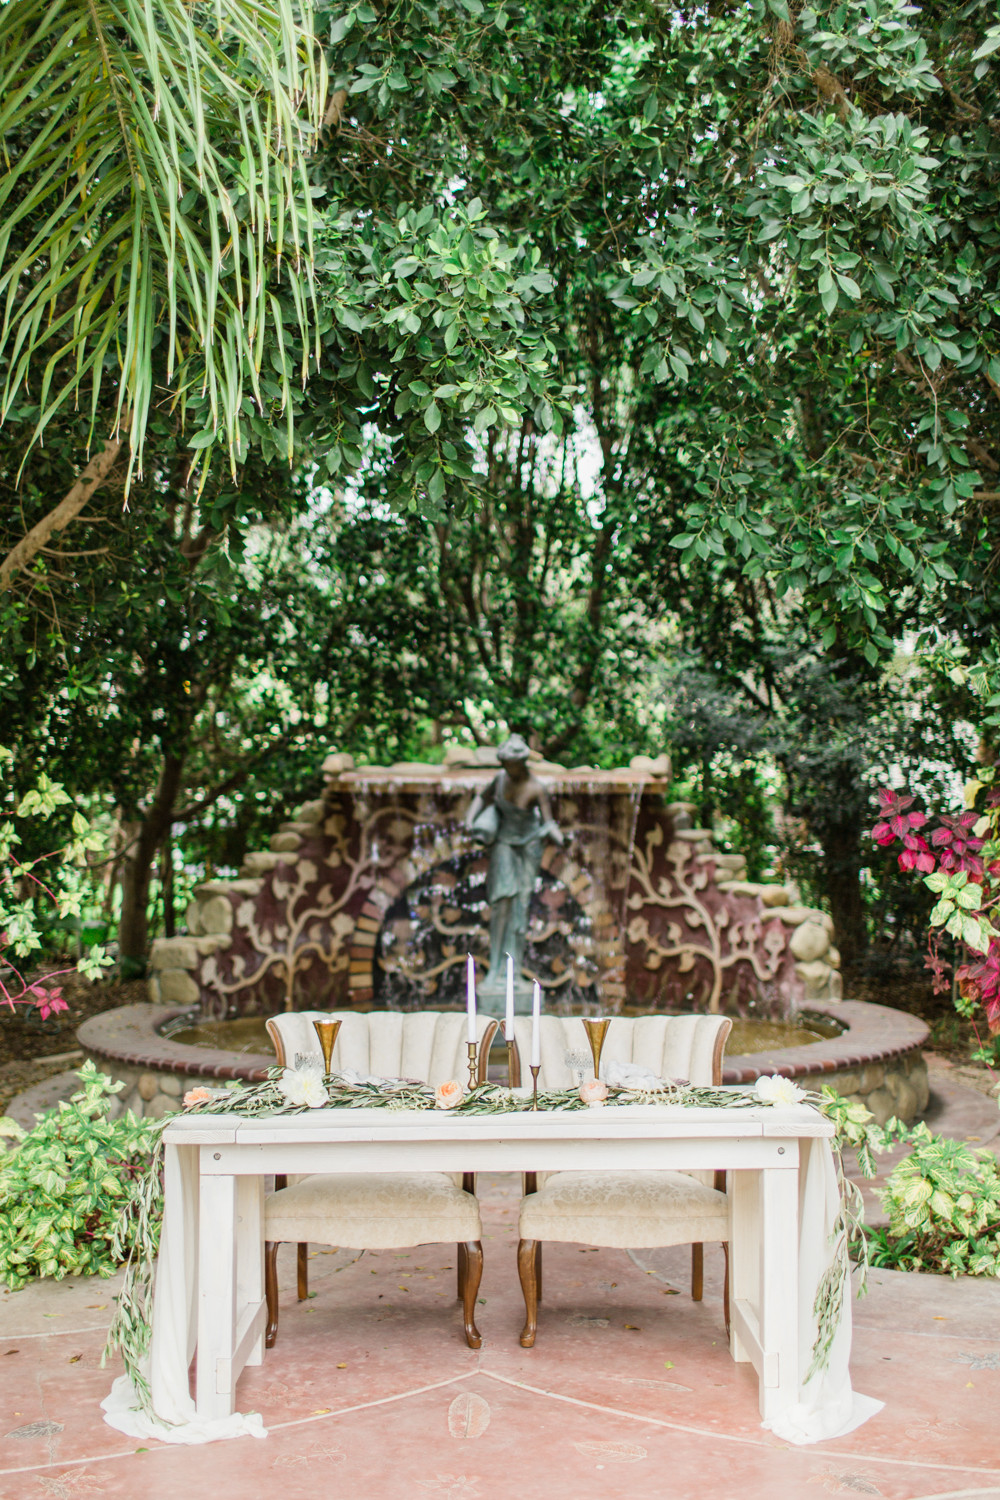 sweetheart table set in front of a stone fountain